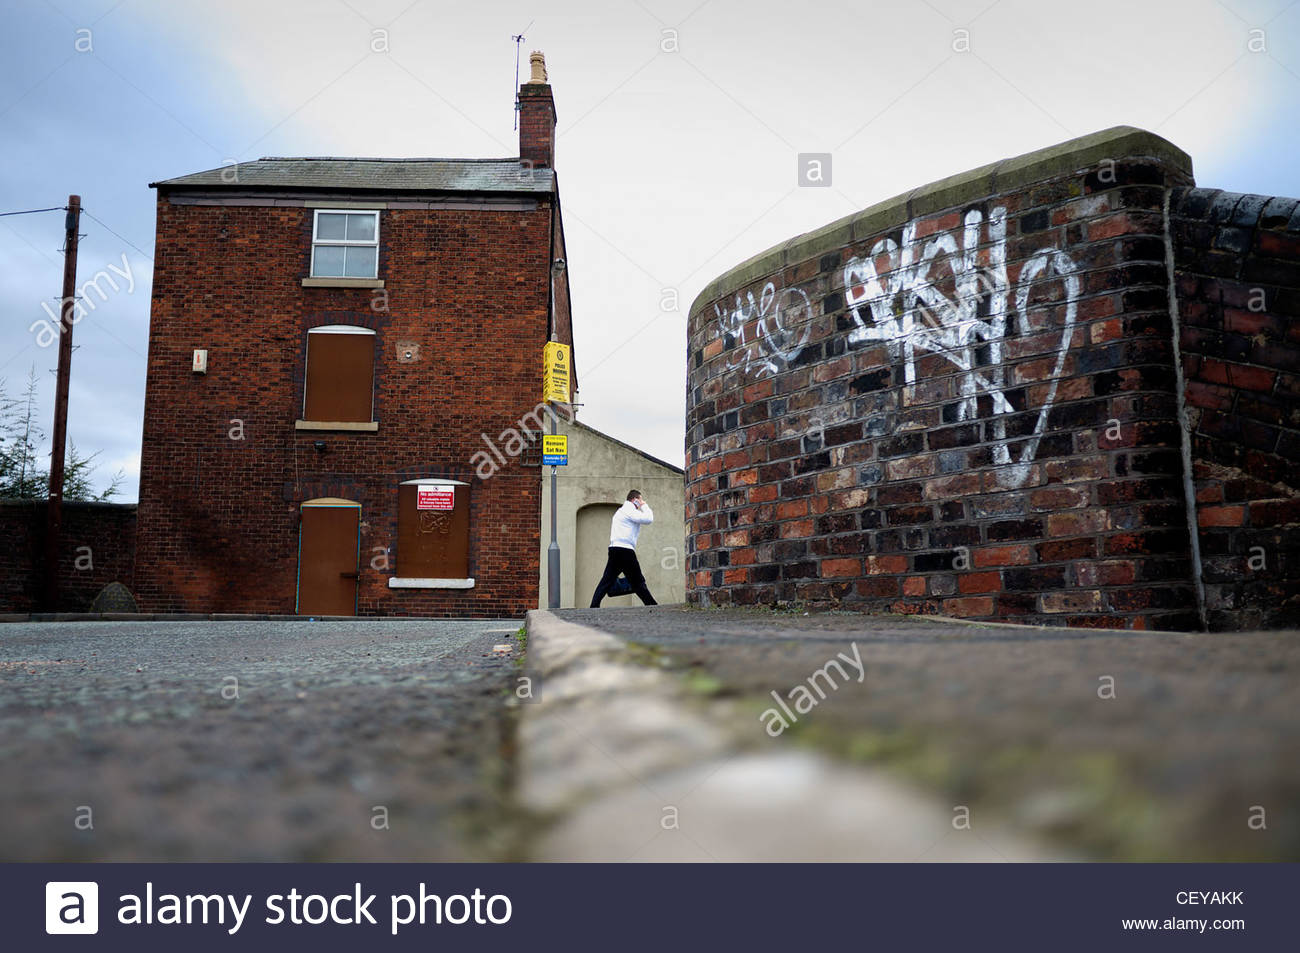 Belmont Row area, a rundown area awaiting development as part of the Eastside regeneration project in Birmingham, Stock Photo